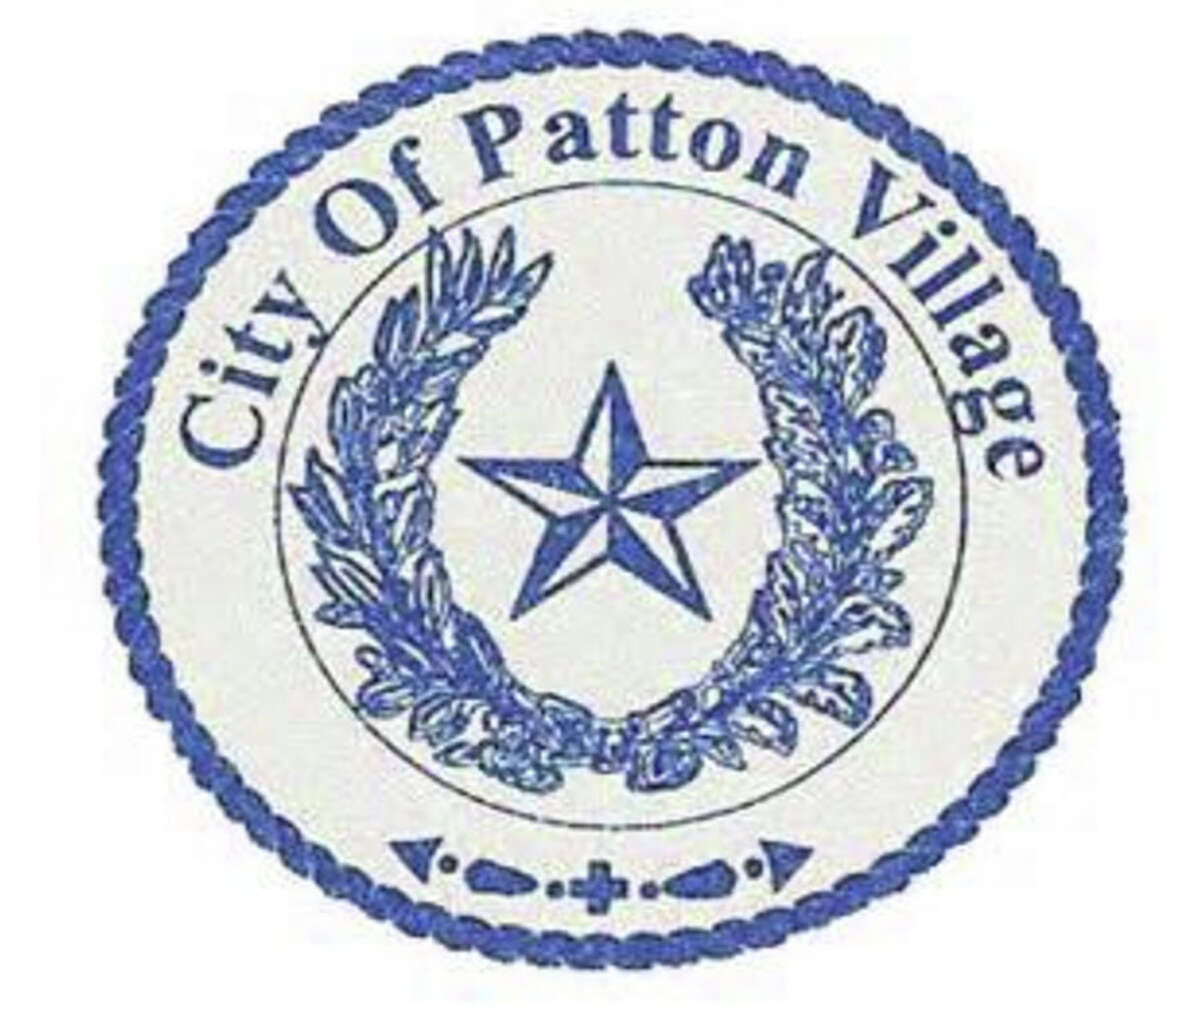 The Patton Village Police Department has upped their enforcement of the city's animal control ordinance, issuing 16 citations and removing approximately 40 dogs from the city, according the Police Chief Shannon Sharp's police update during the Patton Village City Council meeting Feb. 2.